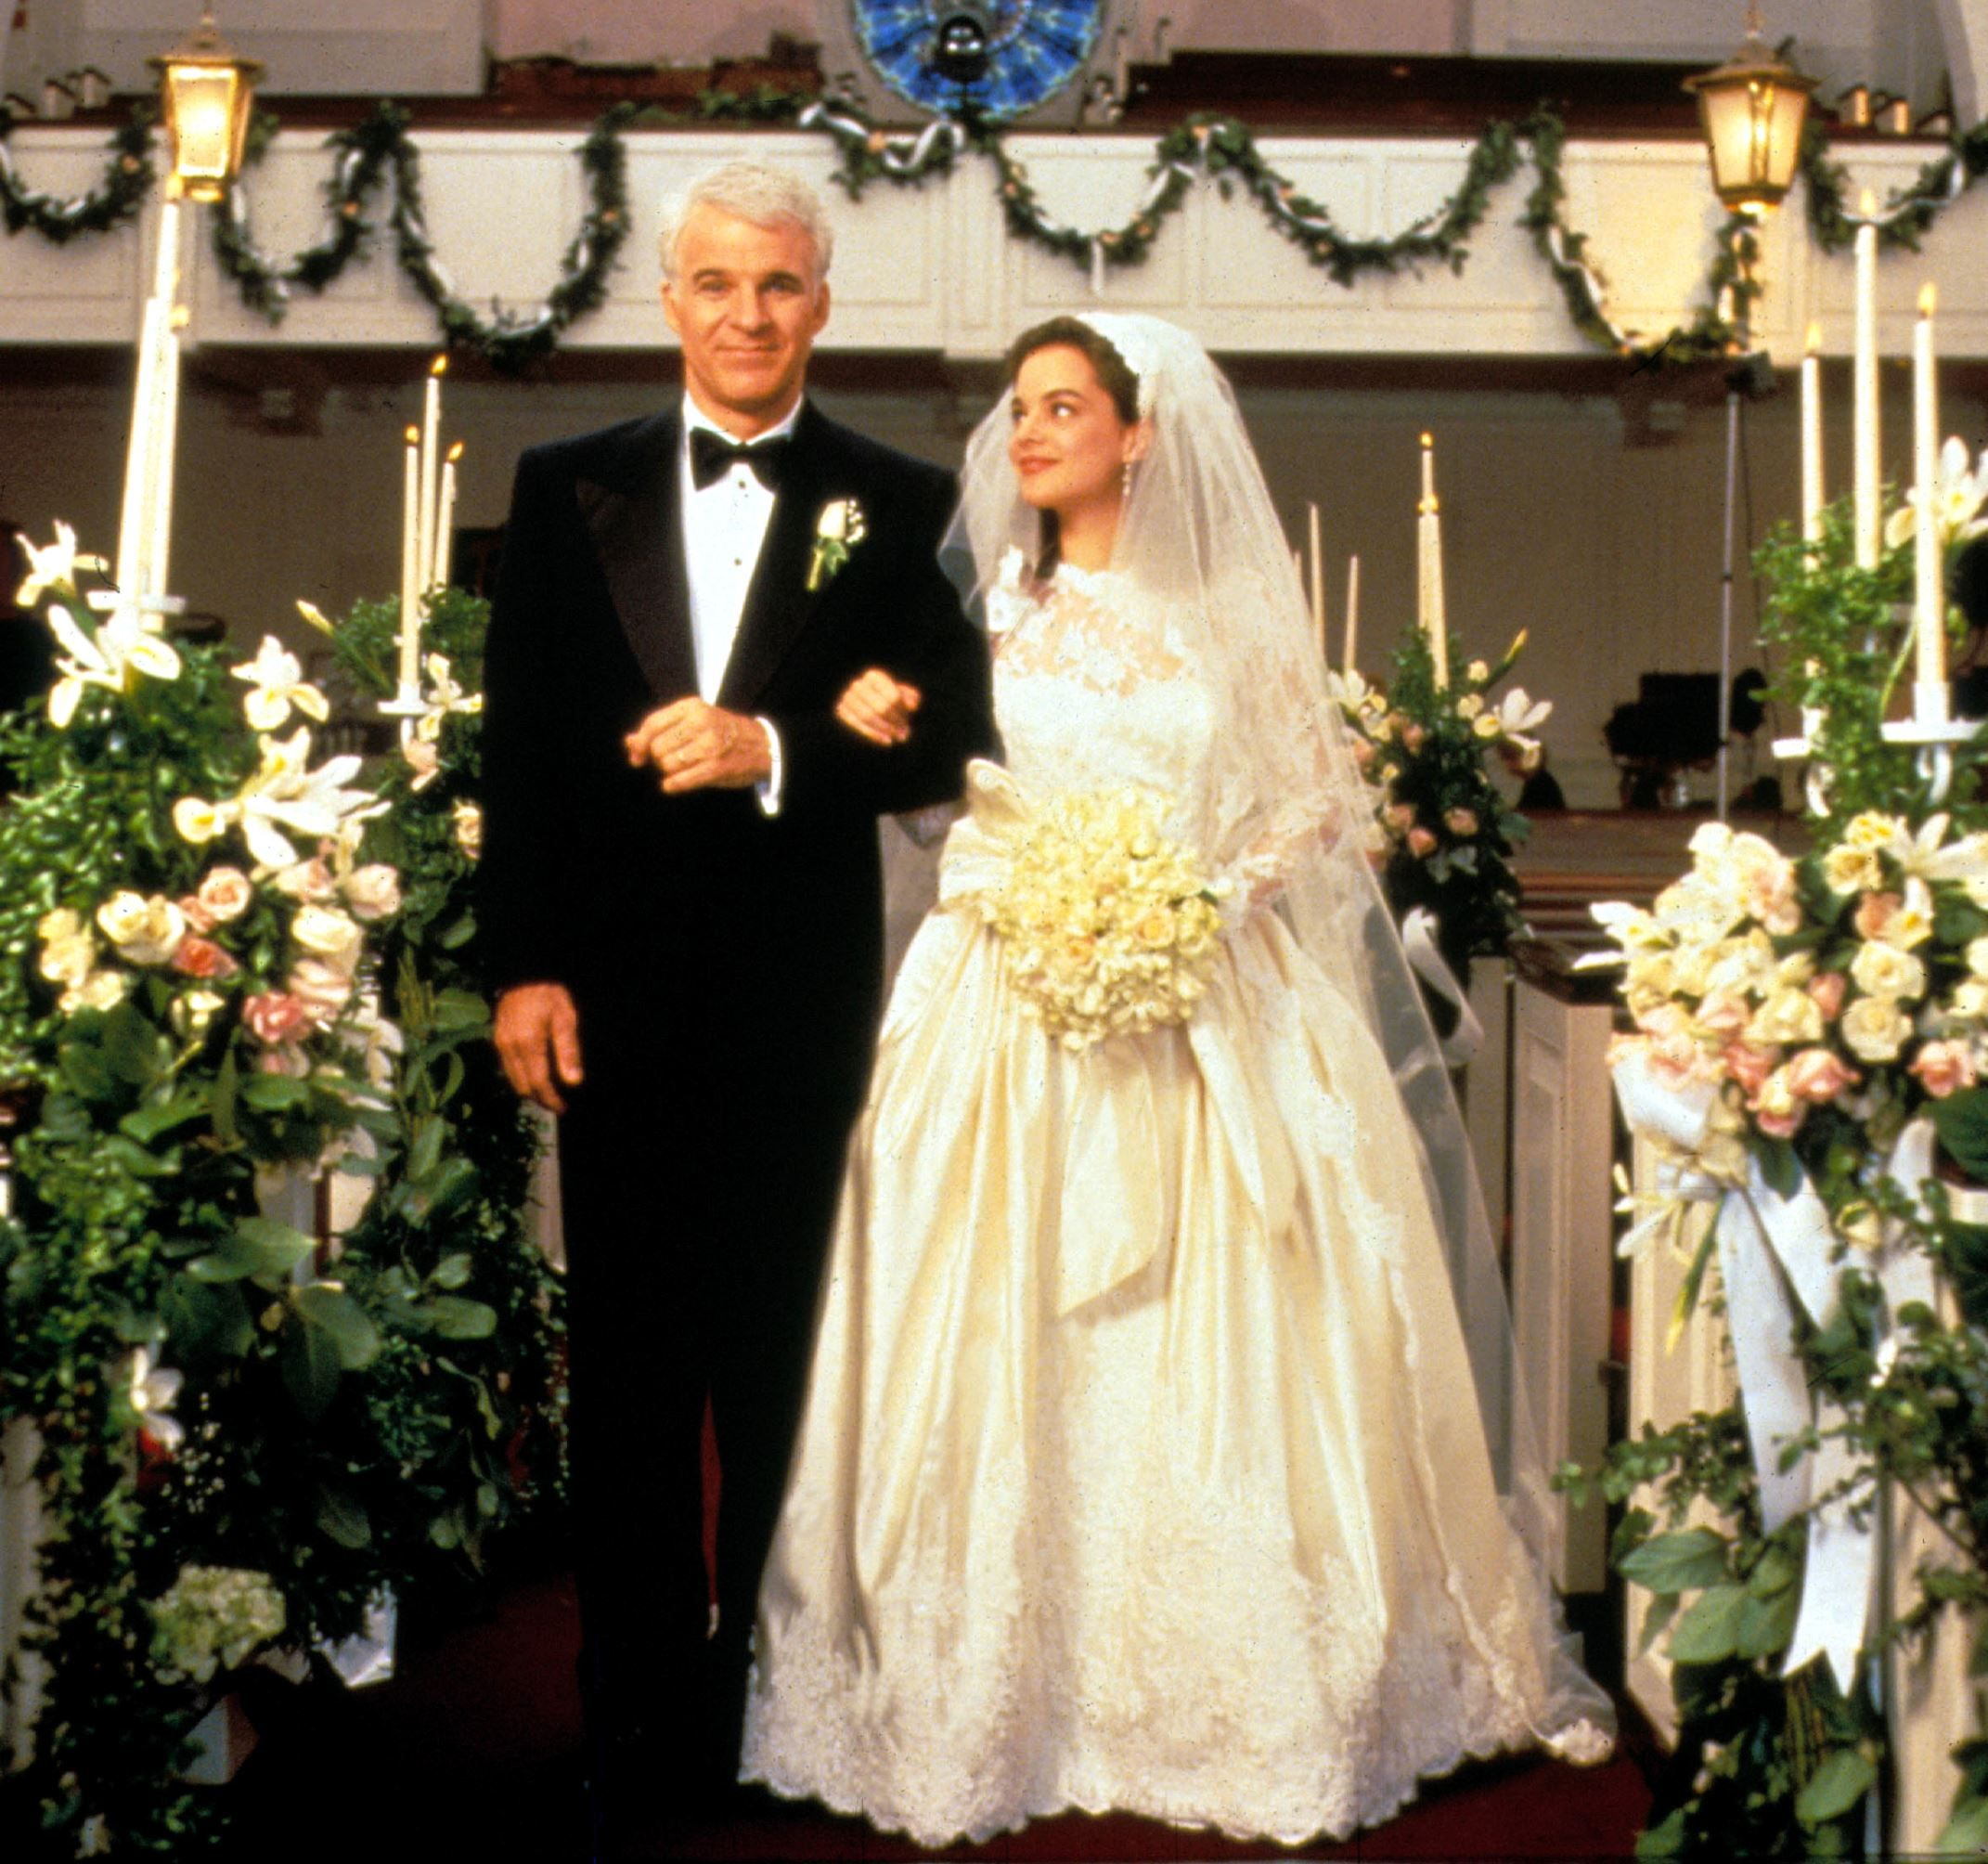 Ð?аÑ?Ñ?инки по запÑ?оÑ?Ñ? FATHER OF THE BRIDE movie wedding dress